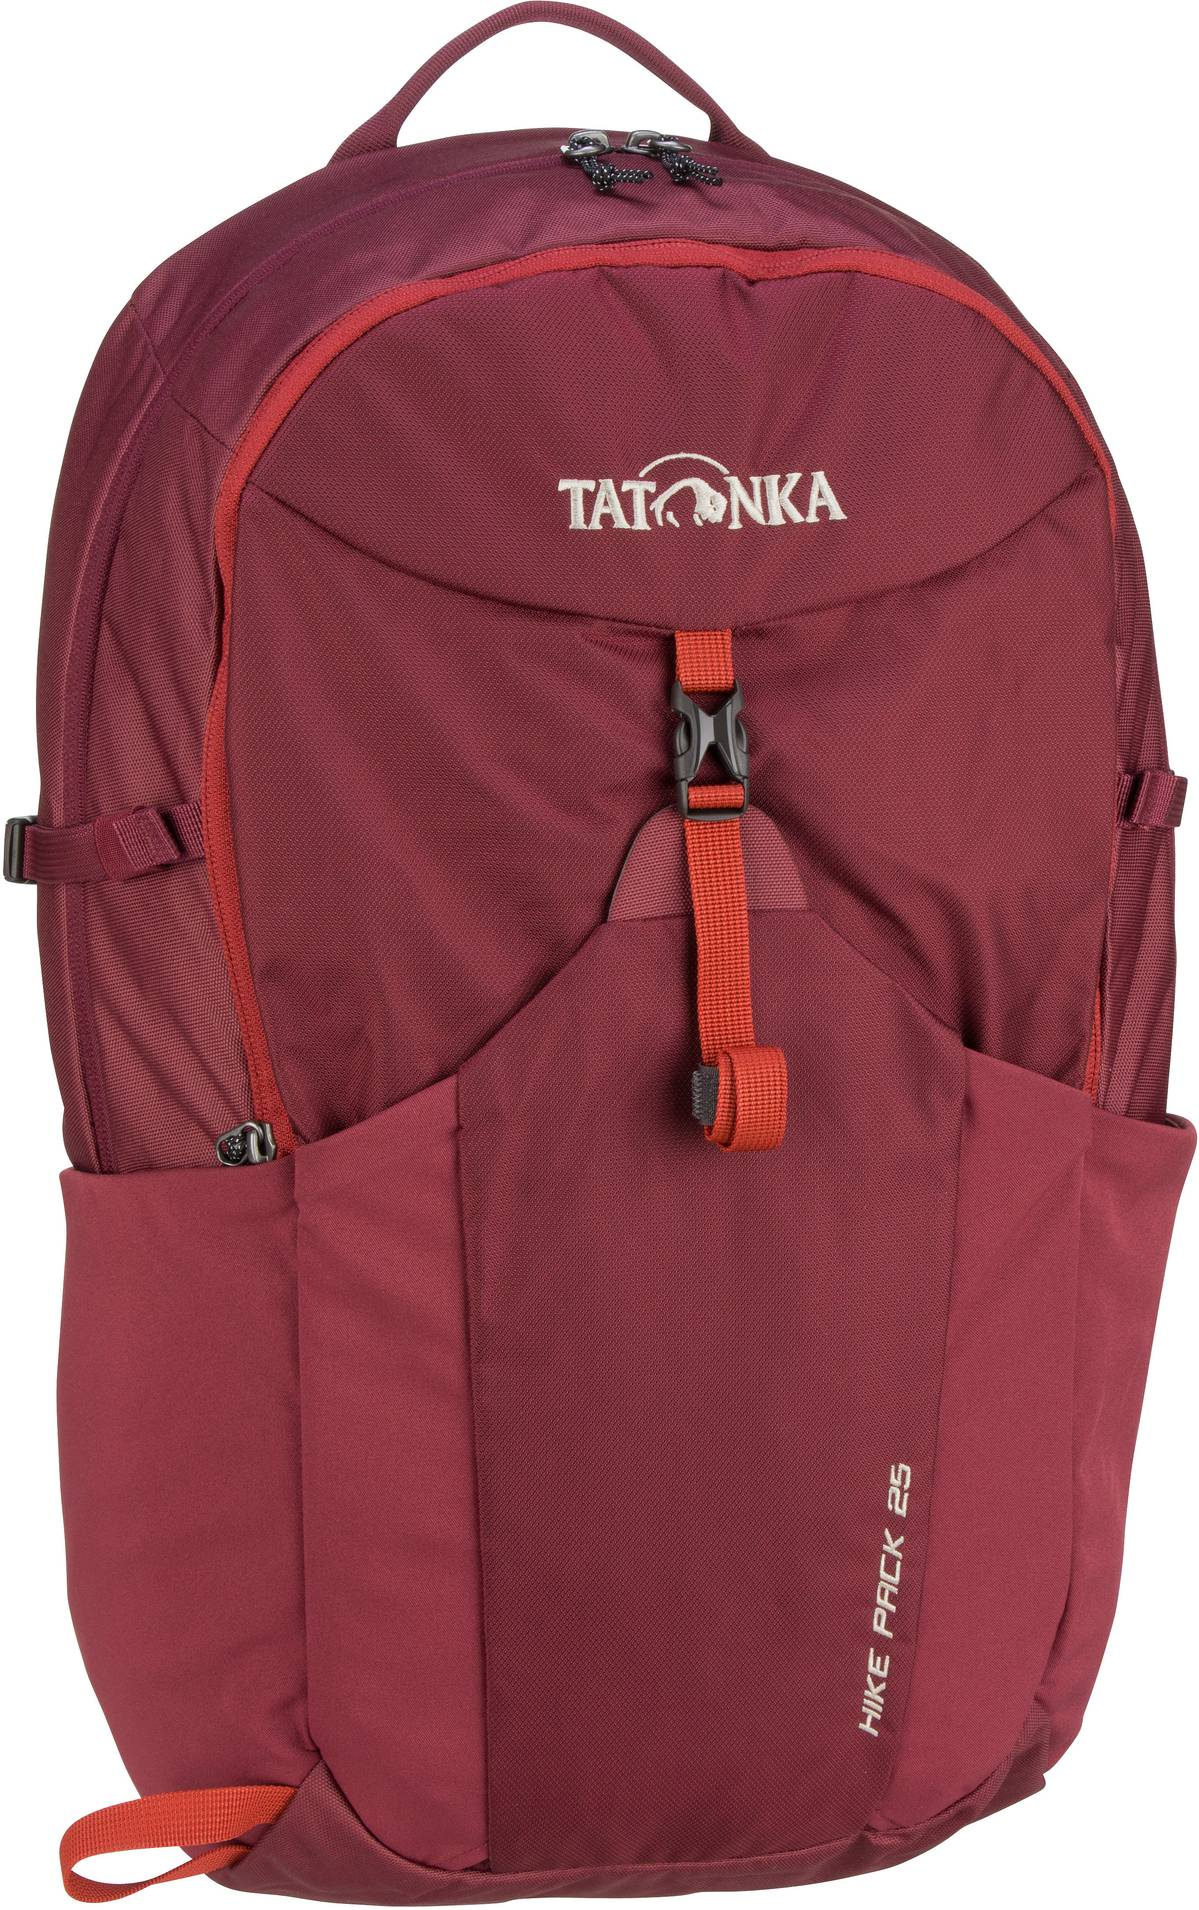 Wanderrucksack Hike Pack 25 Bordeaux Red (25 Liter)